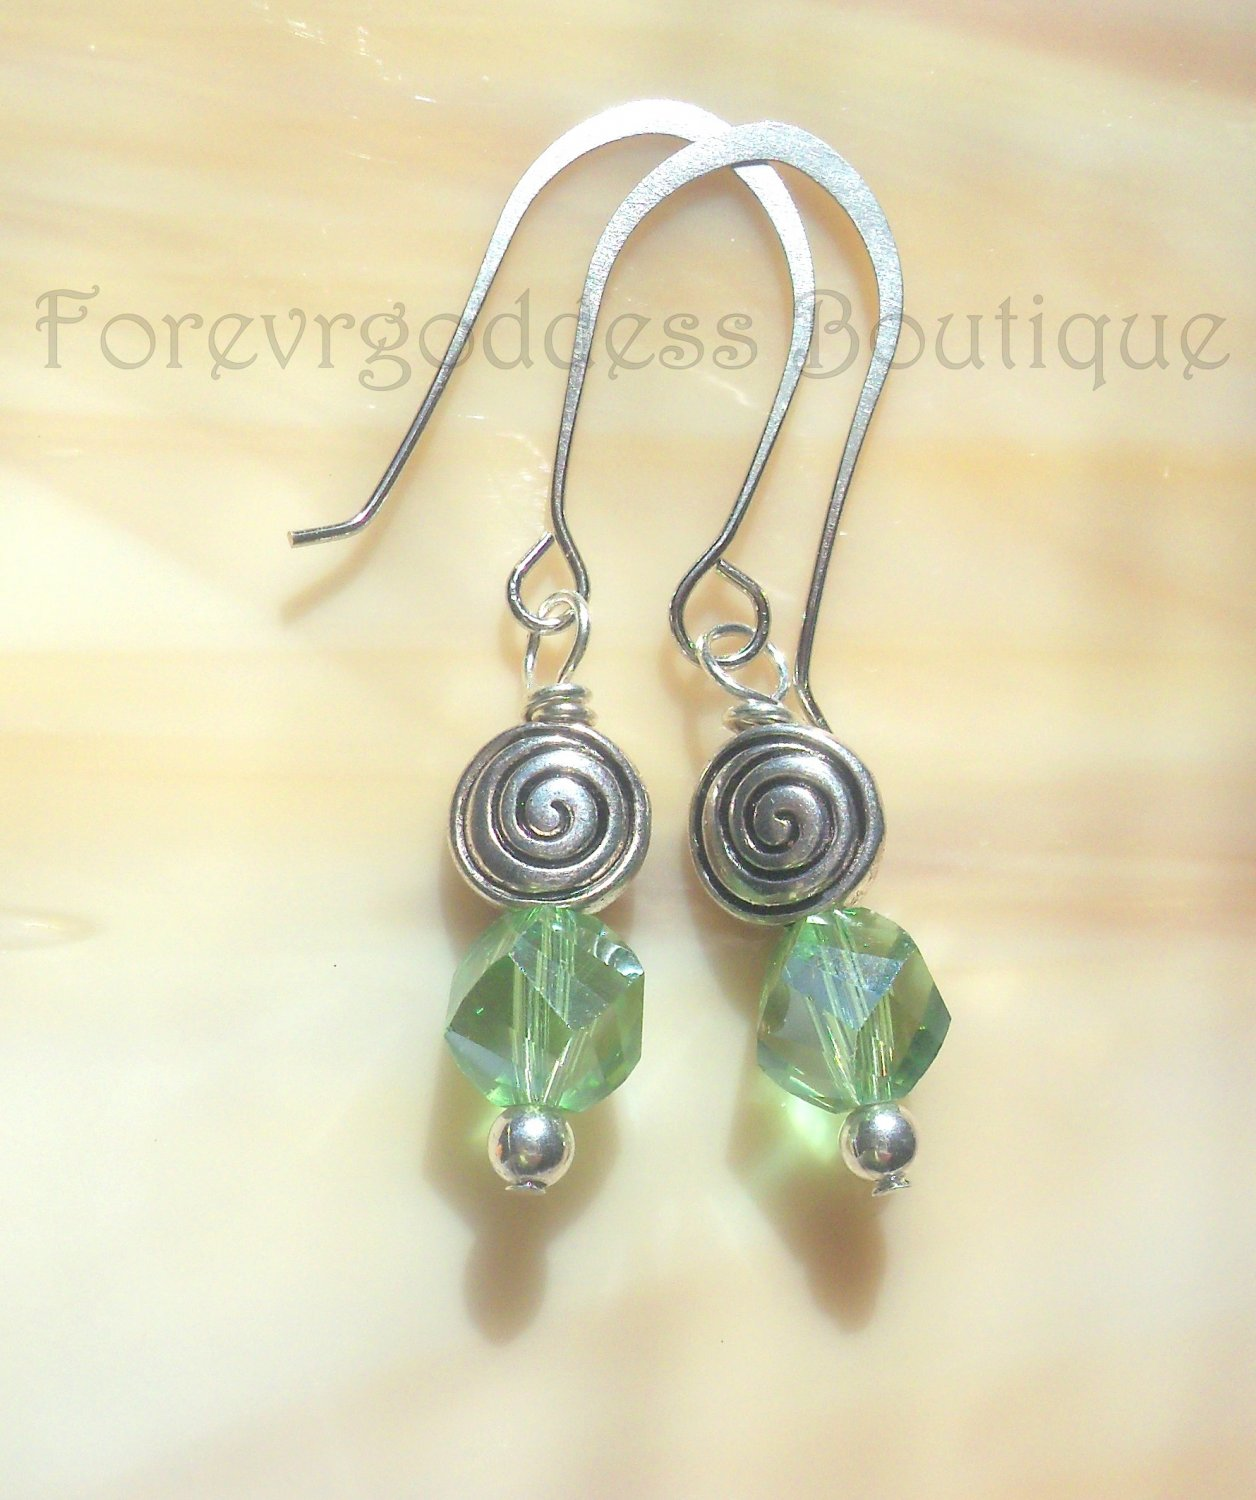 Green crystals with Swirl earrings